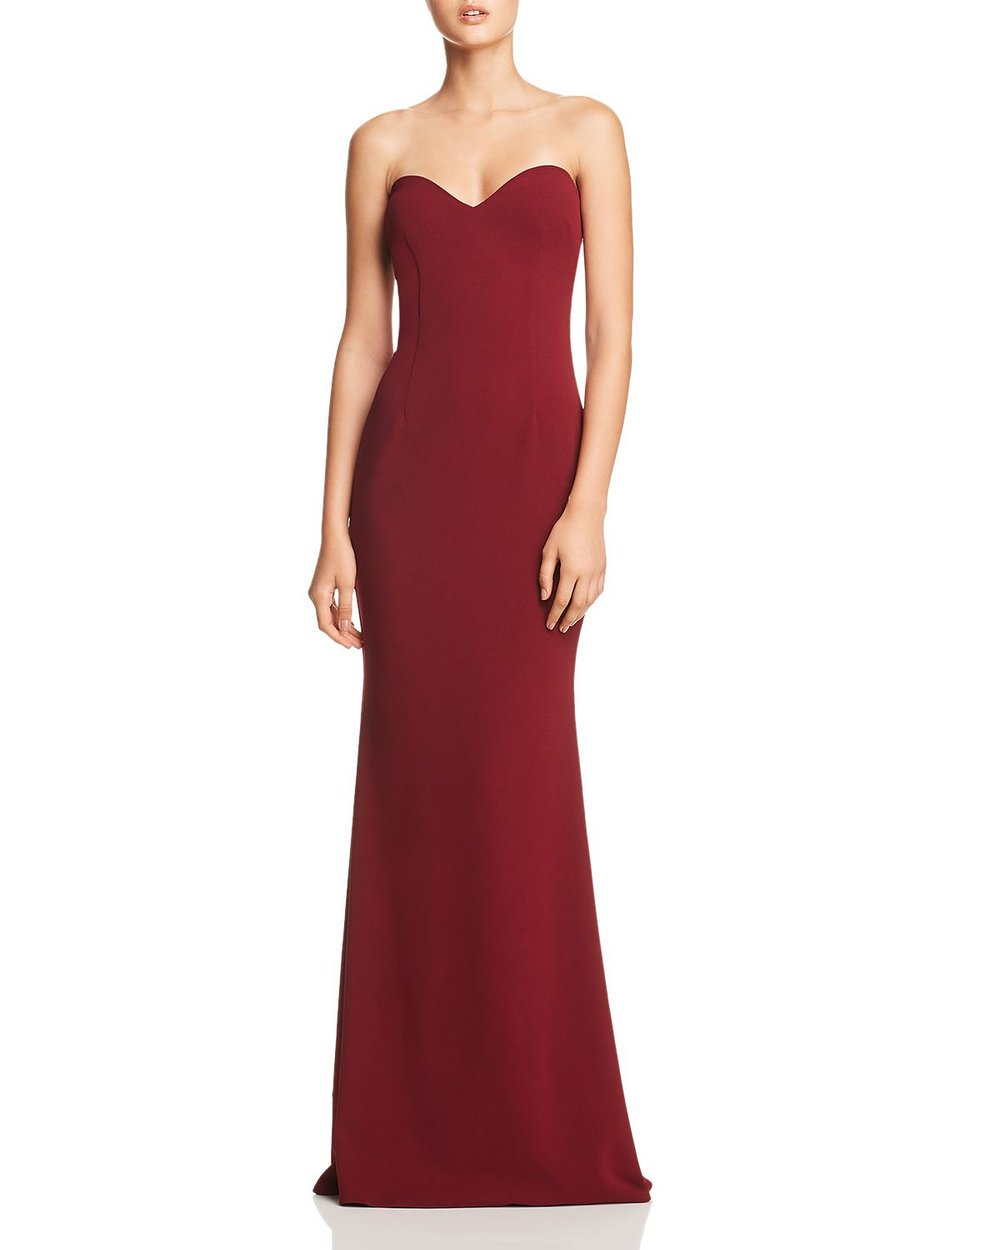 red evening gown.jpg